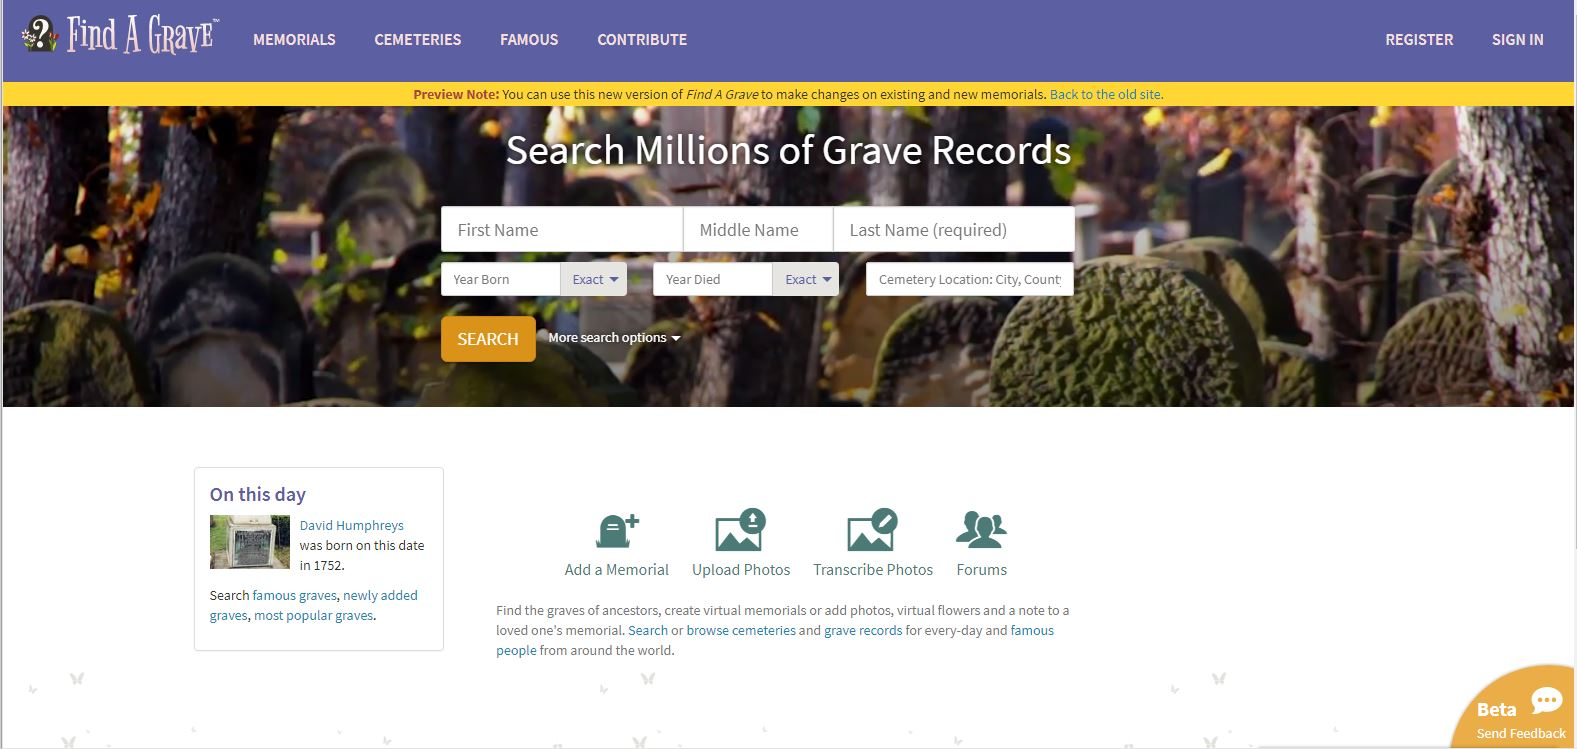 UpFront with NGS: Find A Grave – the same and yet different!